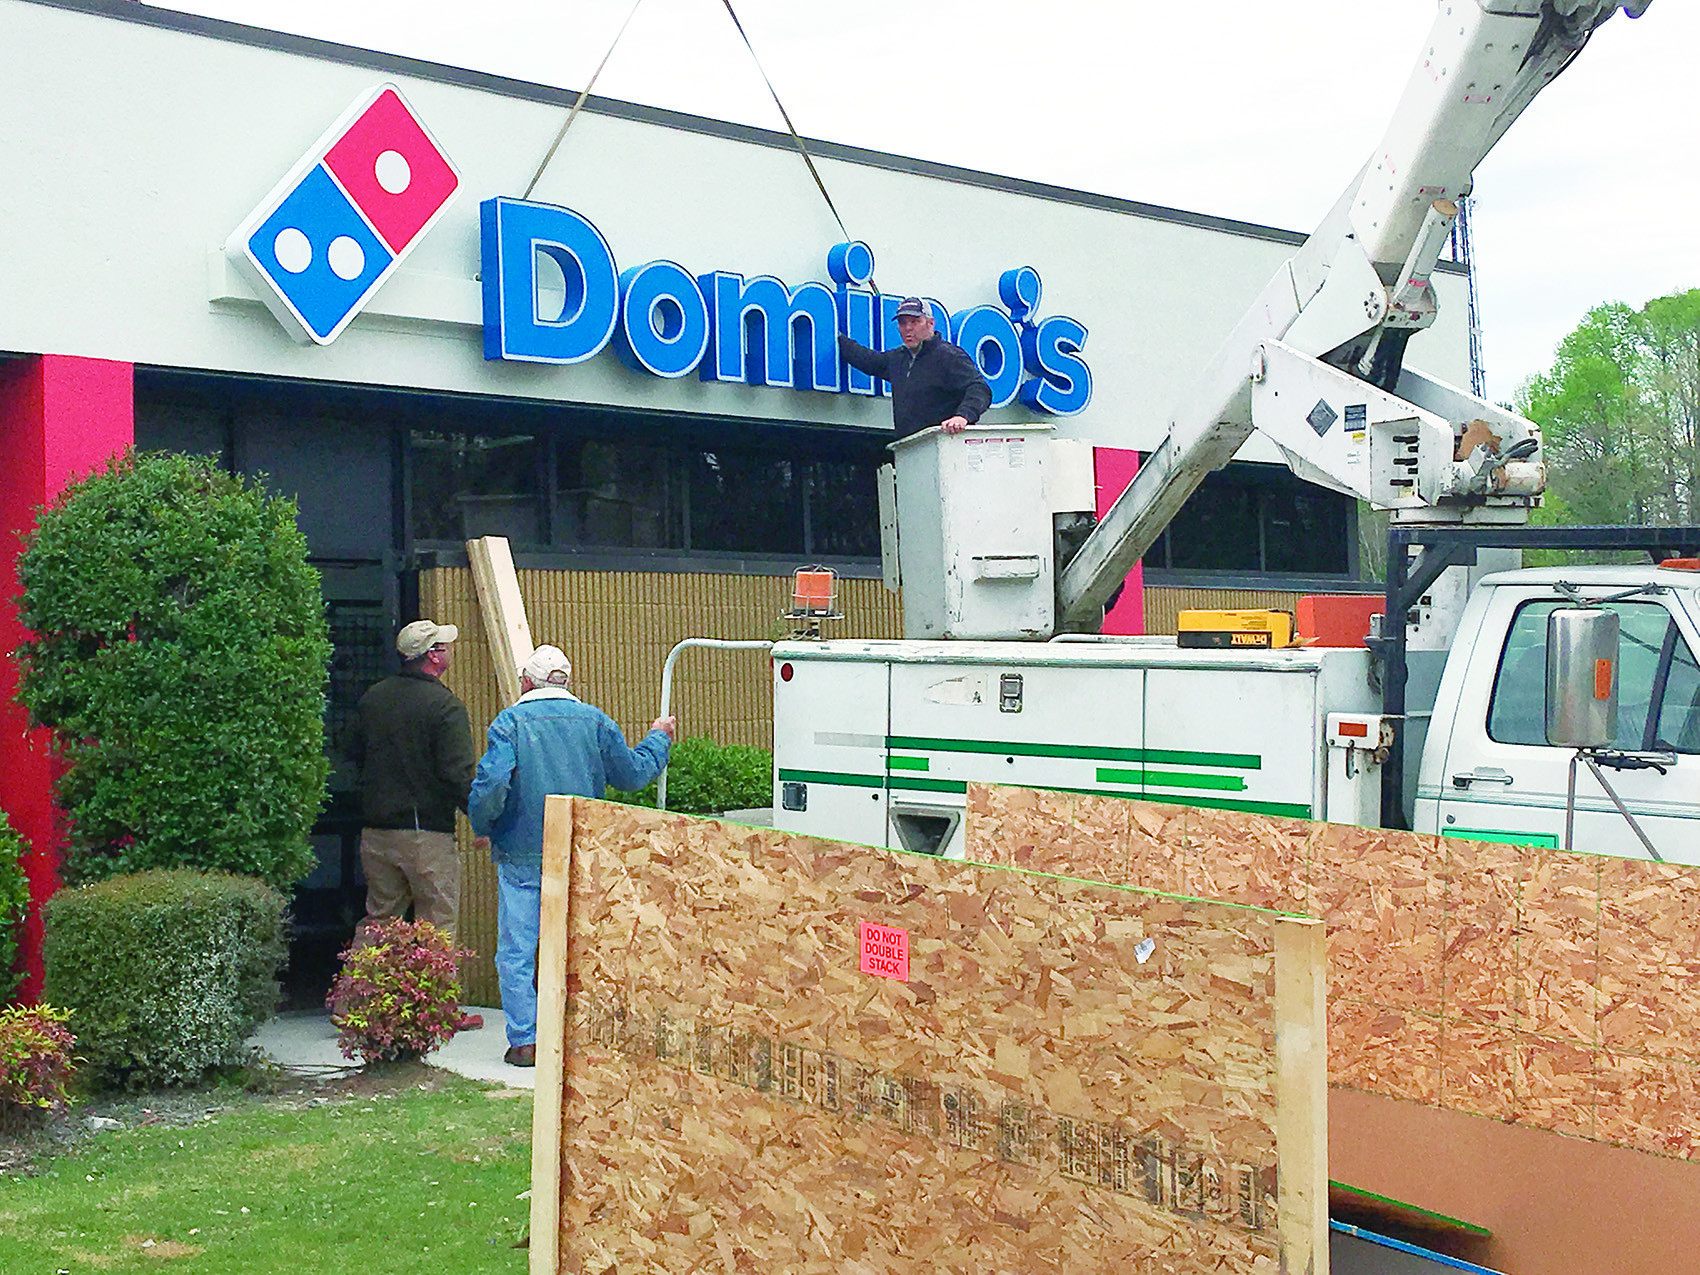 0.91 is Dominos Pizza Inc's (NYSE:DPZ) Institutional Investor Sentiment